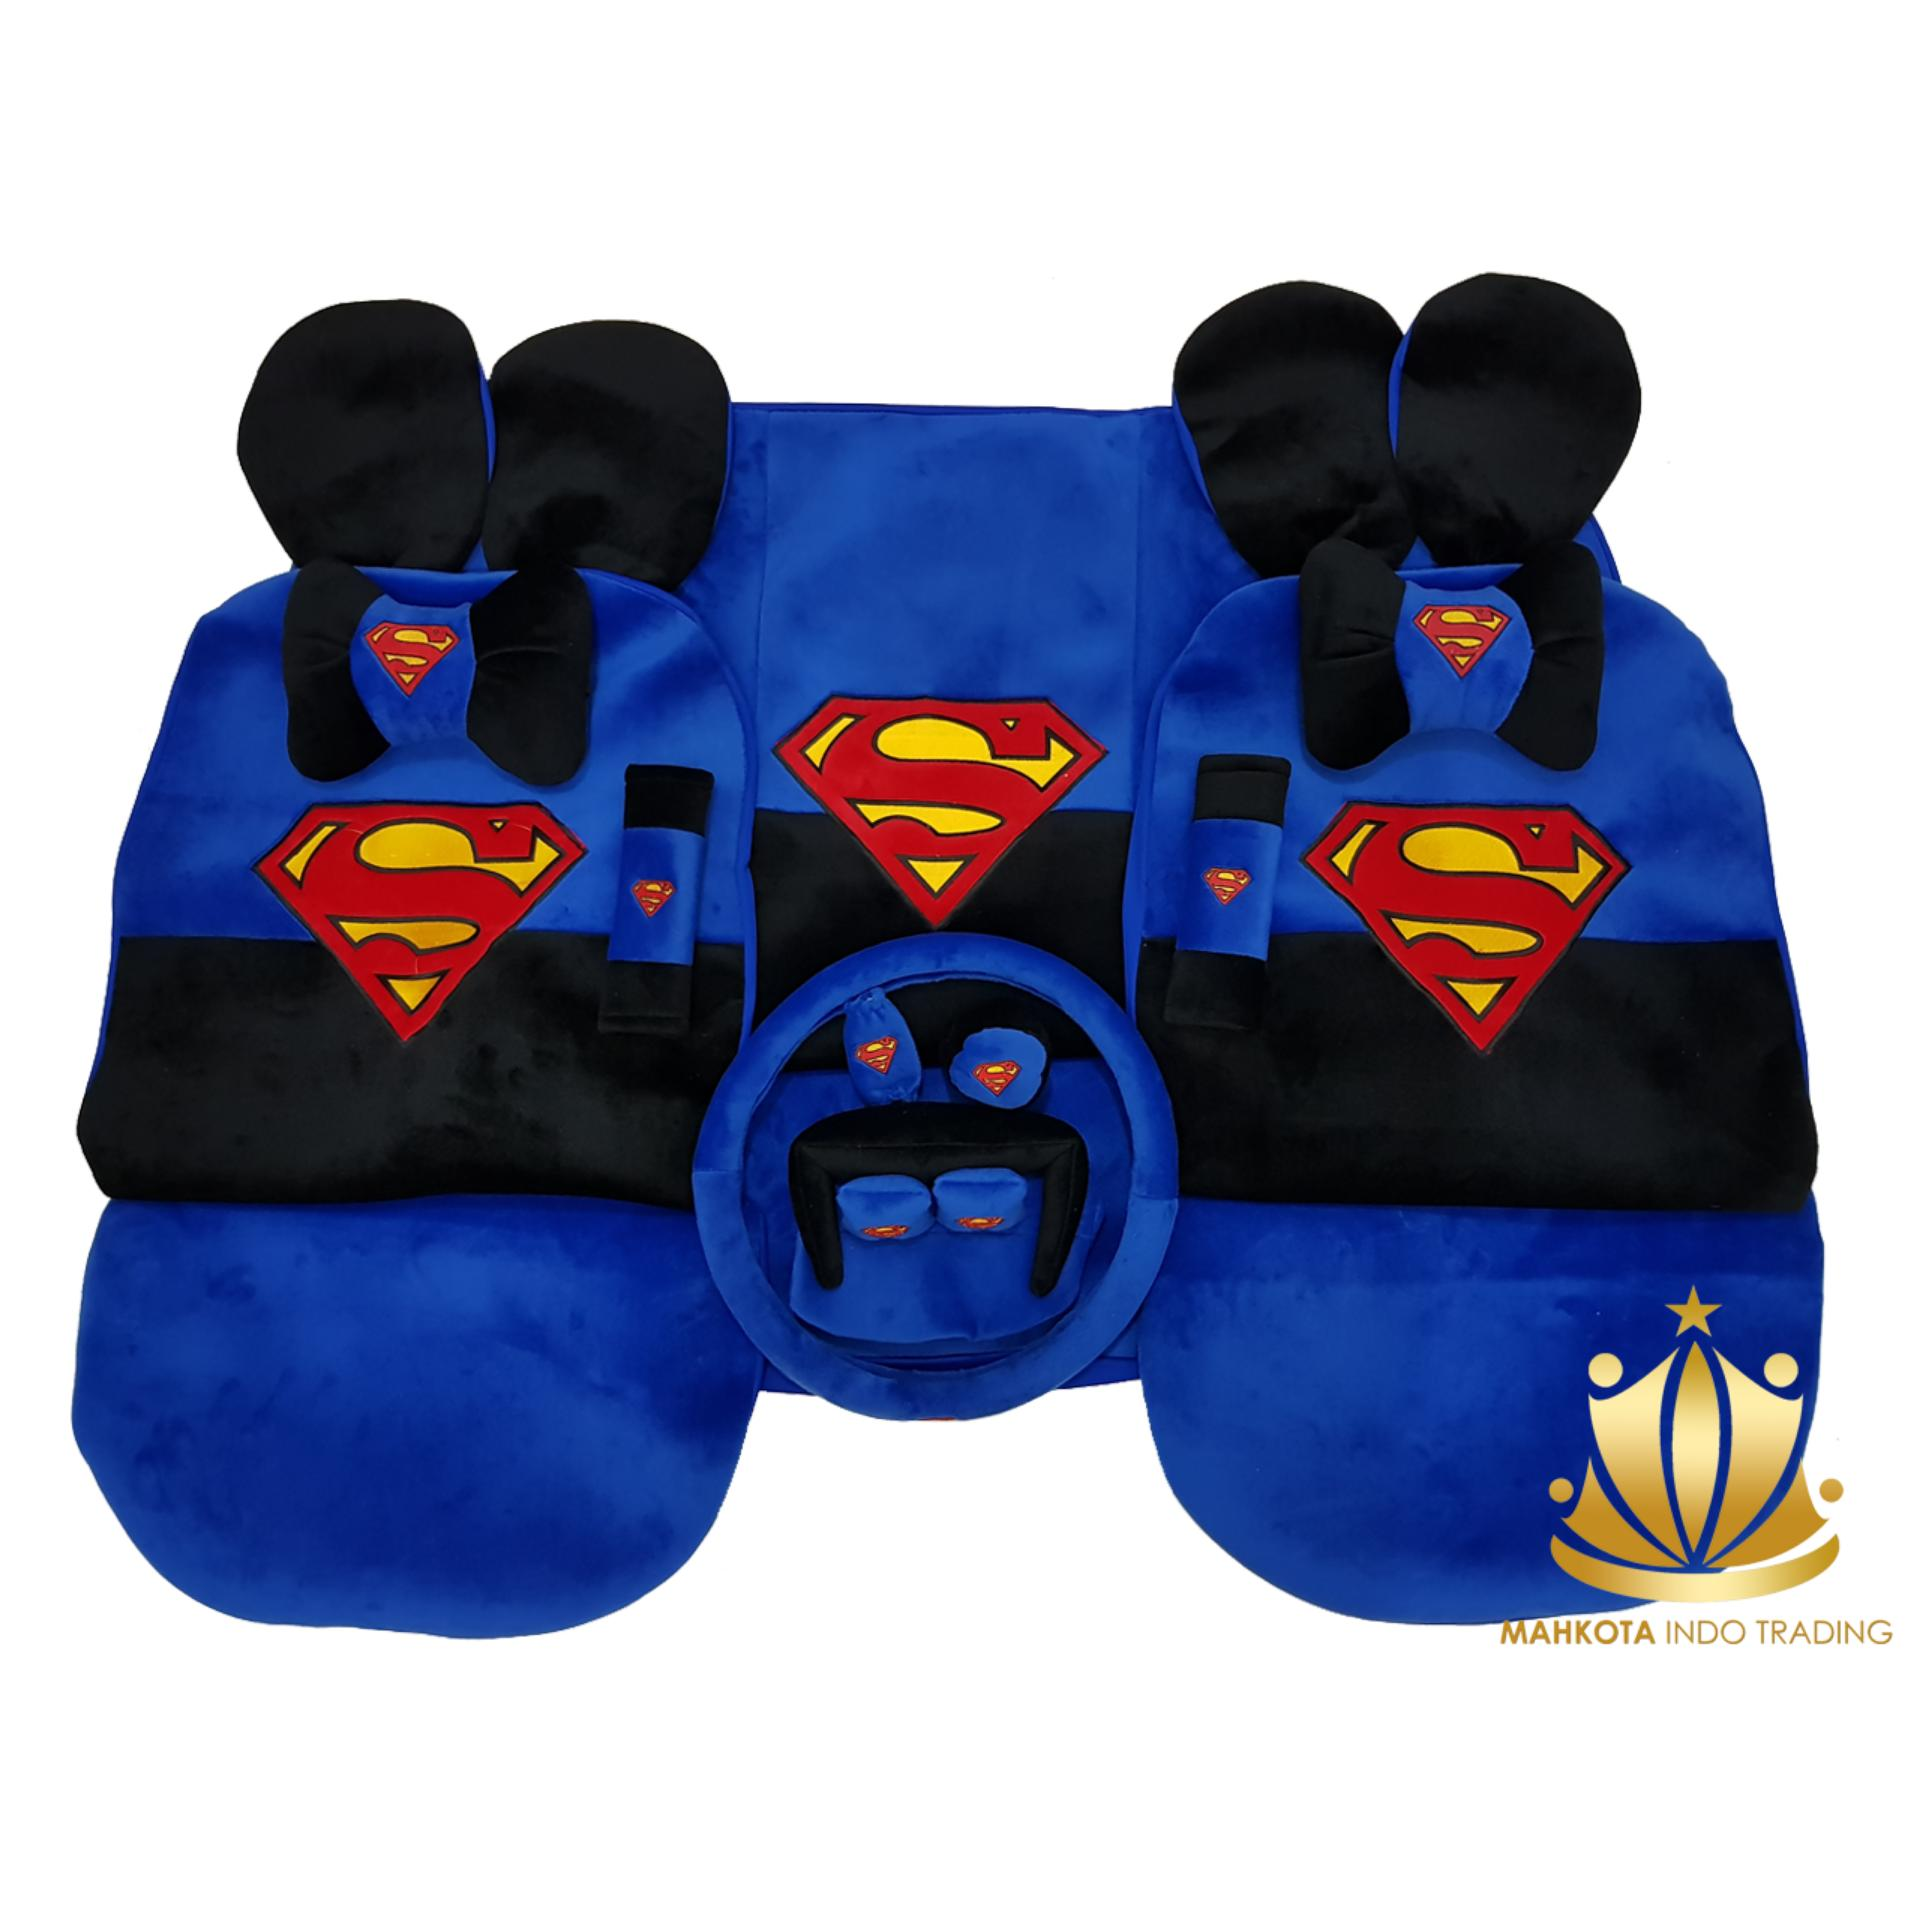 Sarung Jok 24in1 / Car Set / Bantal Mobil Superman All New Avanza / All New Xenia (Head-rest Tidak Menyatu) (3 Baris)